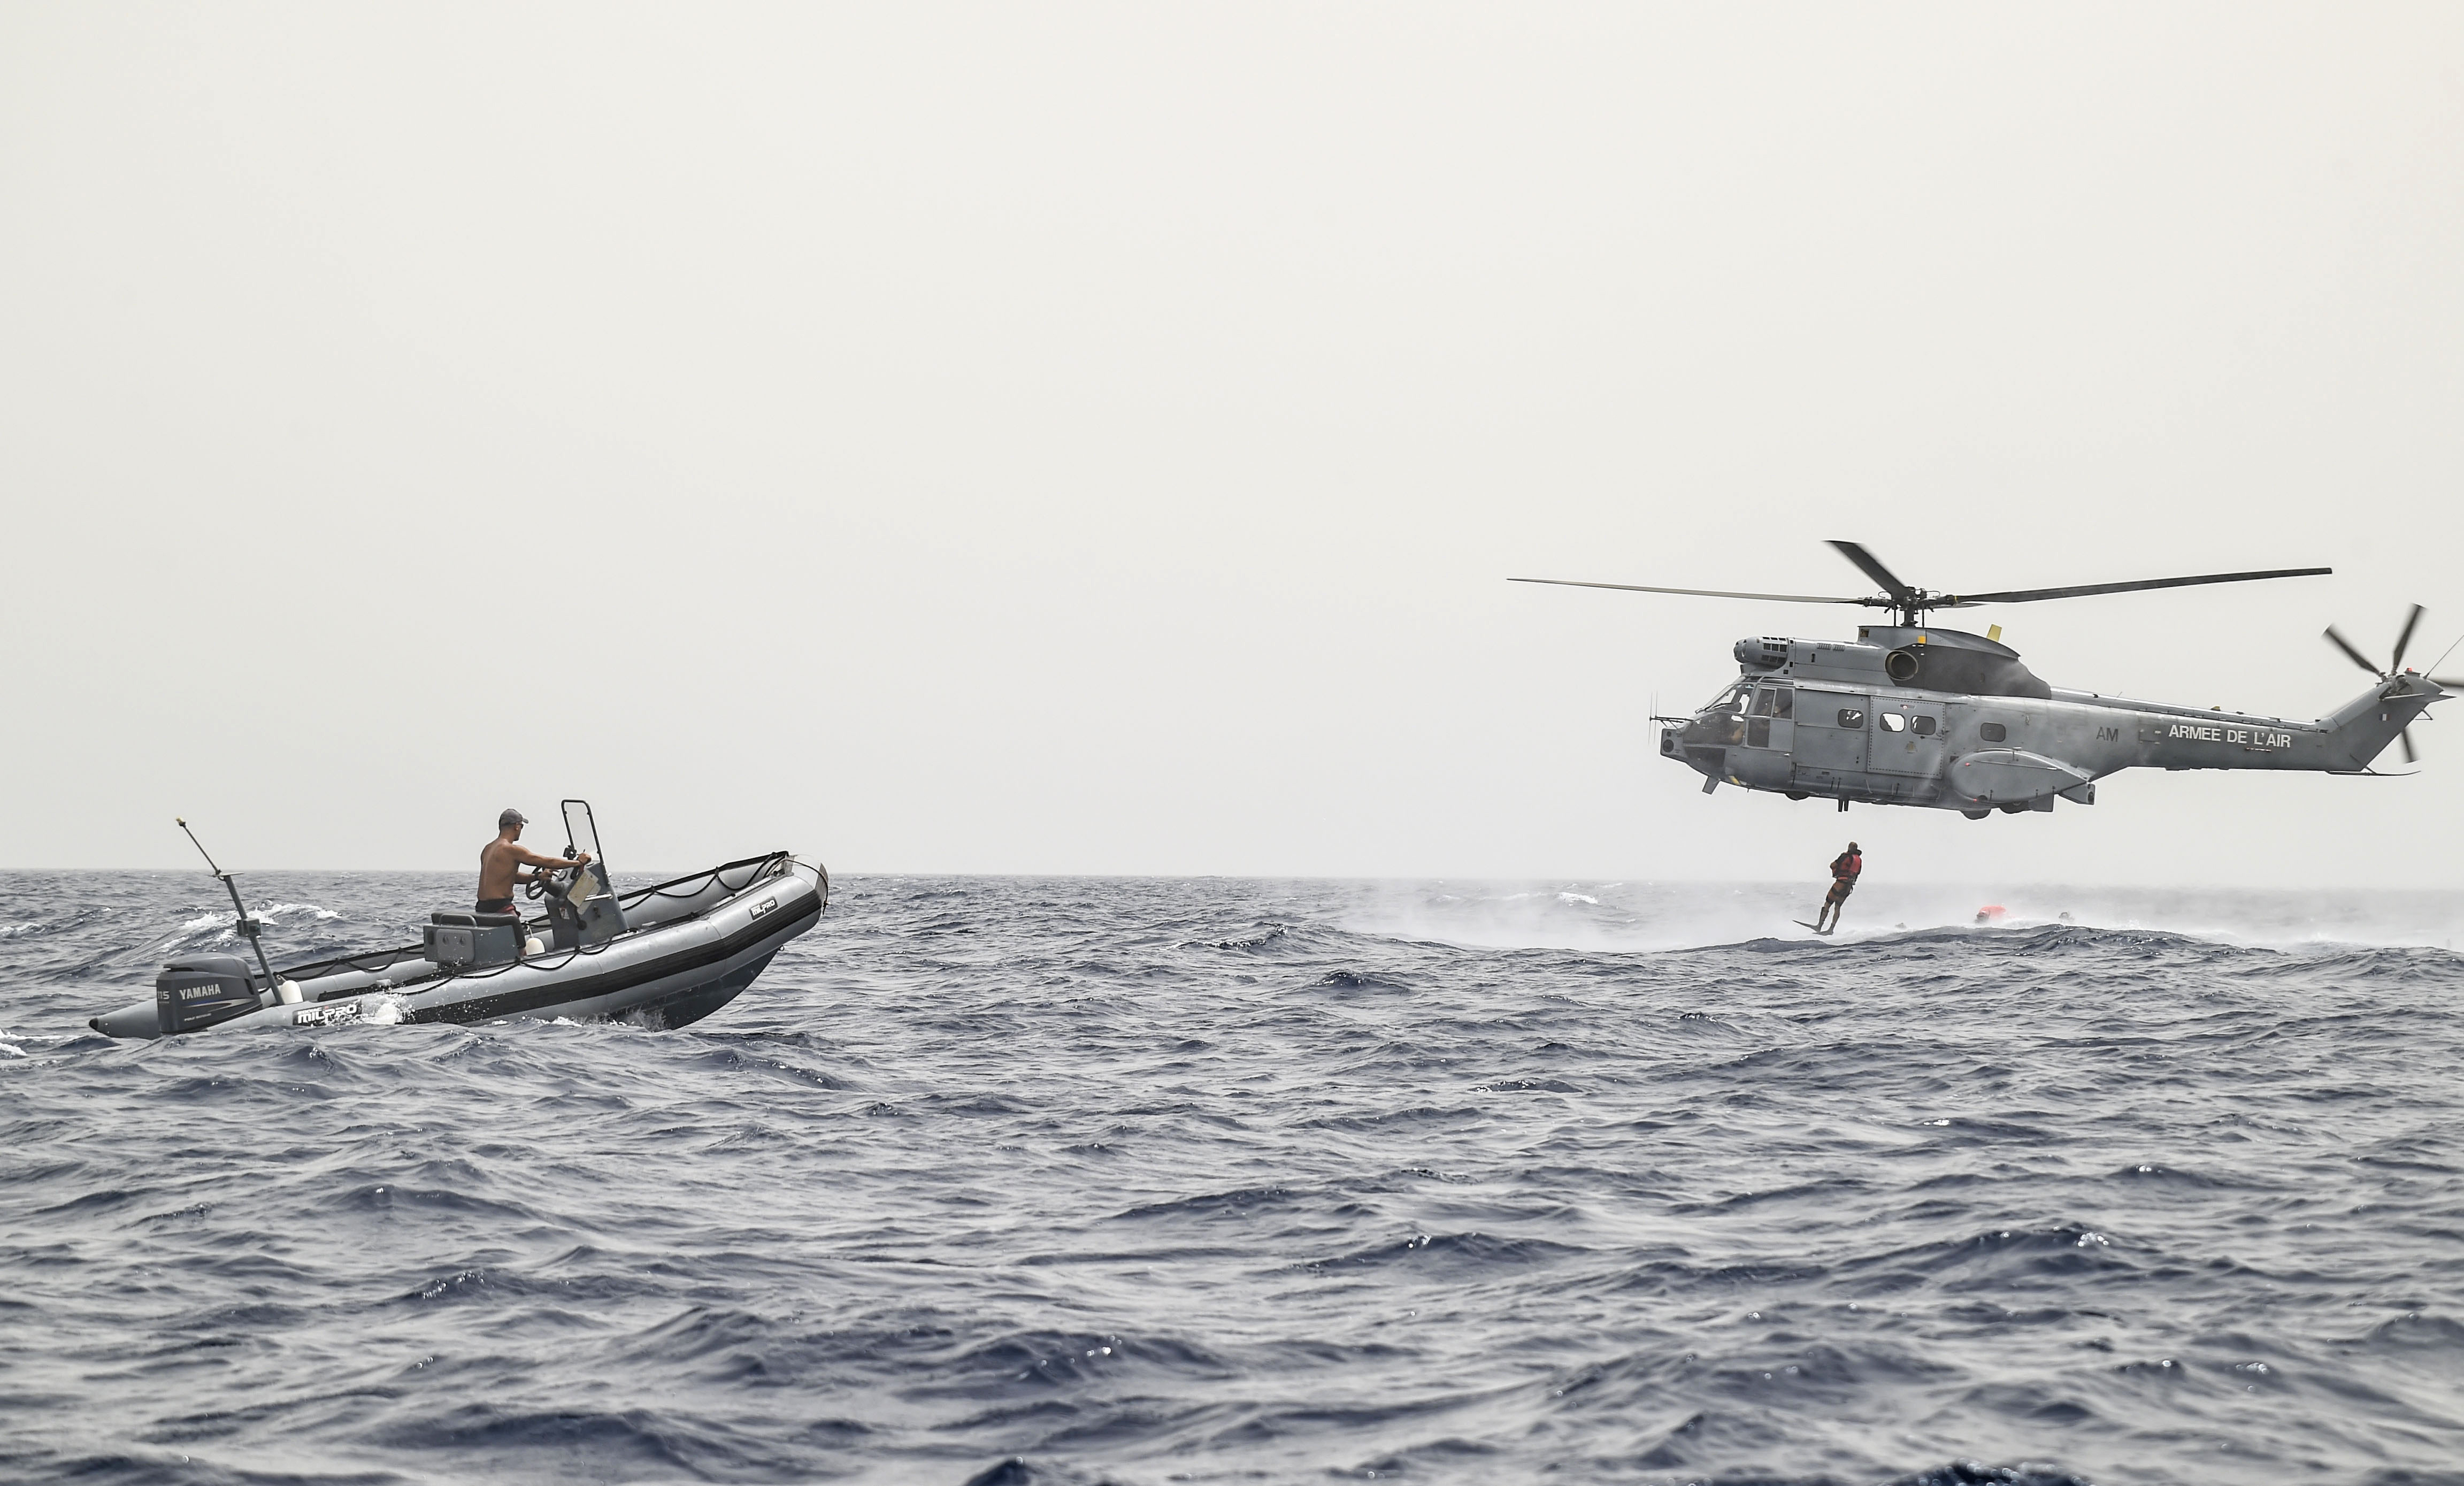 CJTF-HOA unit conducts first bilateral rotary wing water